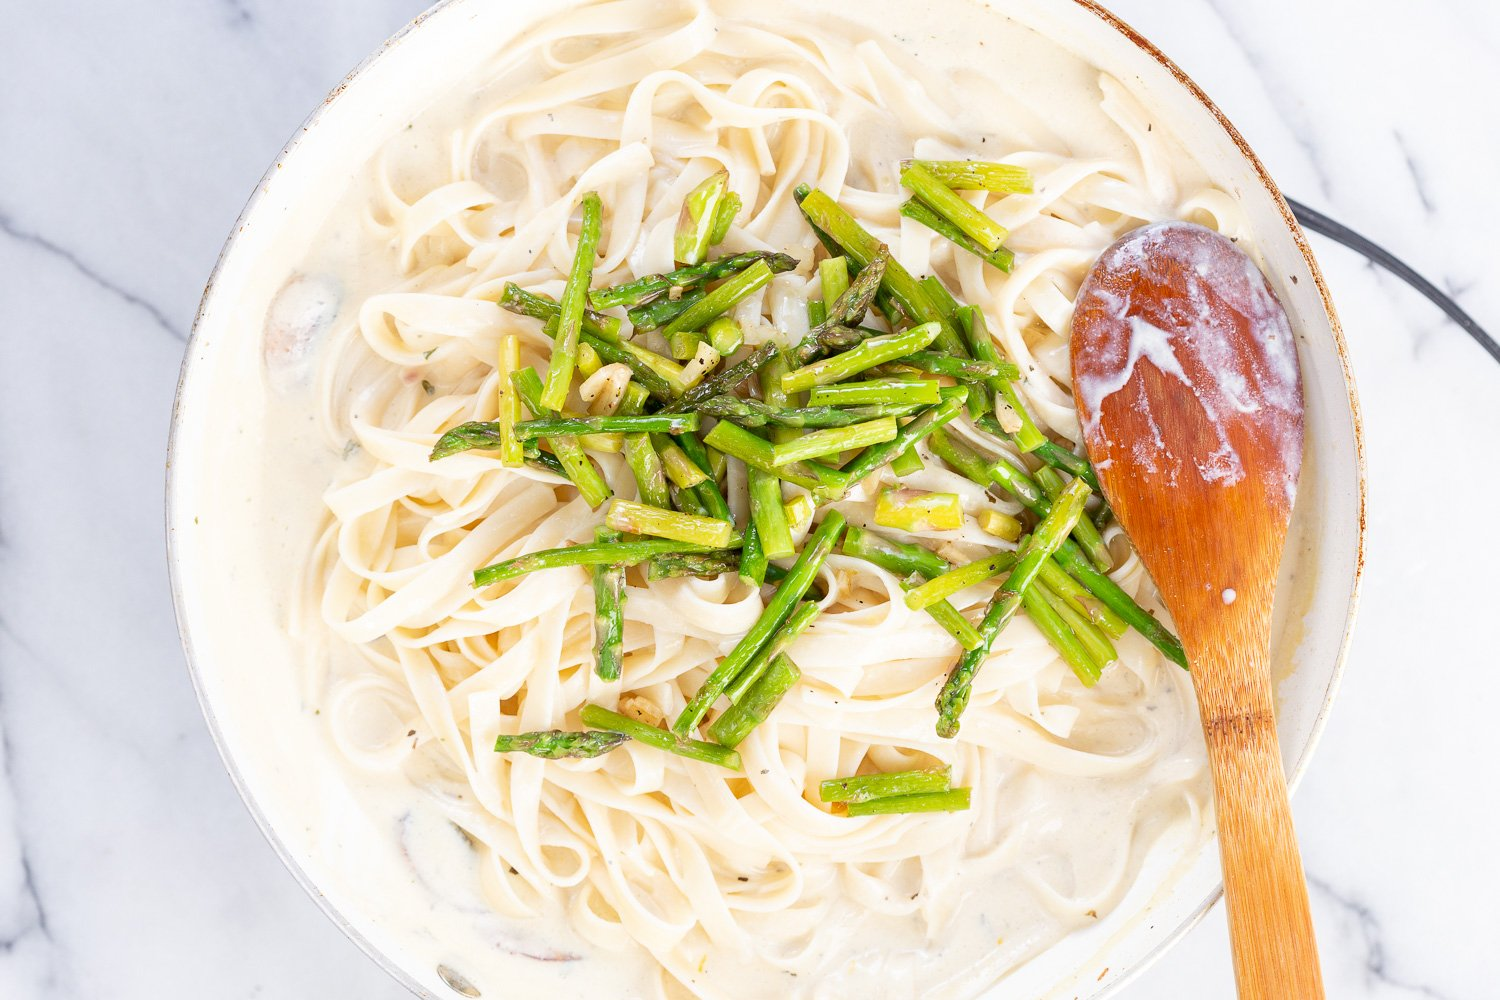 Vegan Lemon Asparagus Pasta - 30 mins! Creamy Lemon Alfredo style sauce with tofu with fettuccine and pan roasted garlic asparagus and more lemon. #Vegan #Nutfree #Recipe. Can be Glutenfree #VeganRicha #LemonAsparagusPasta 17 gm of protein